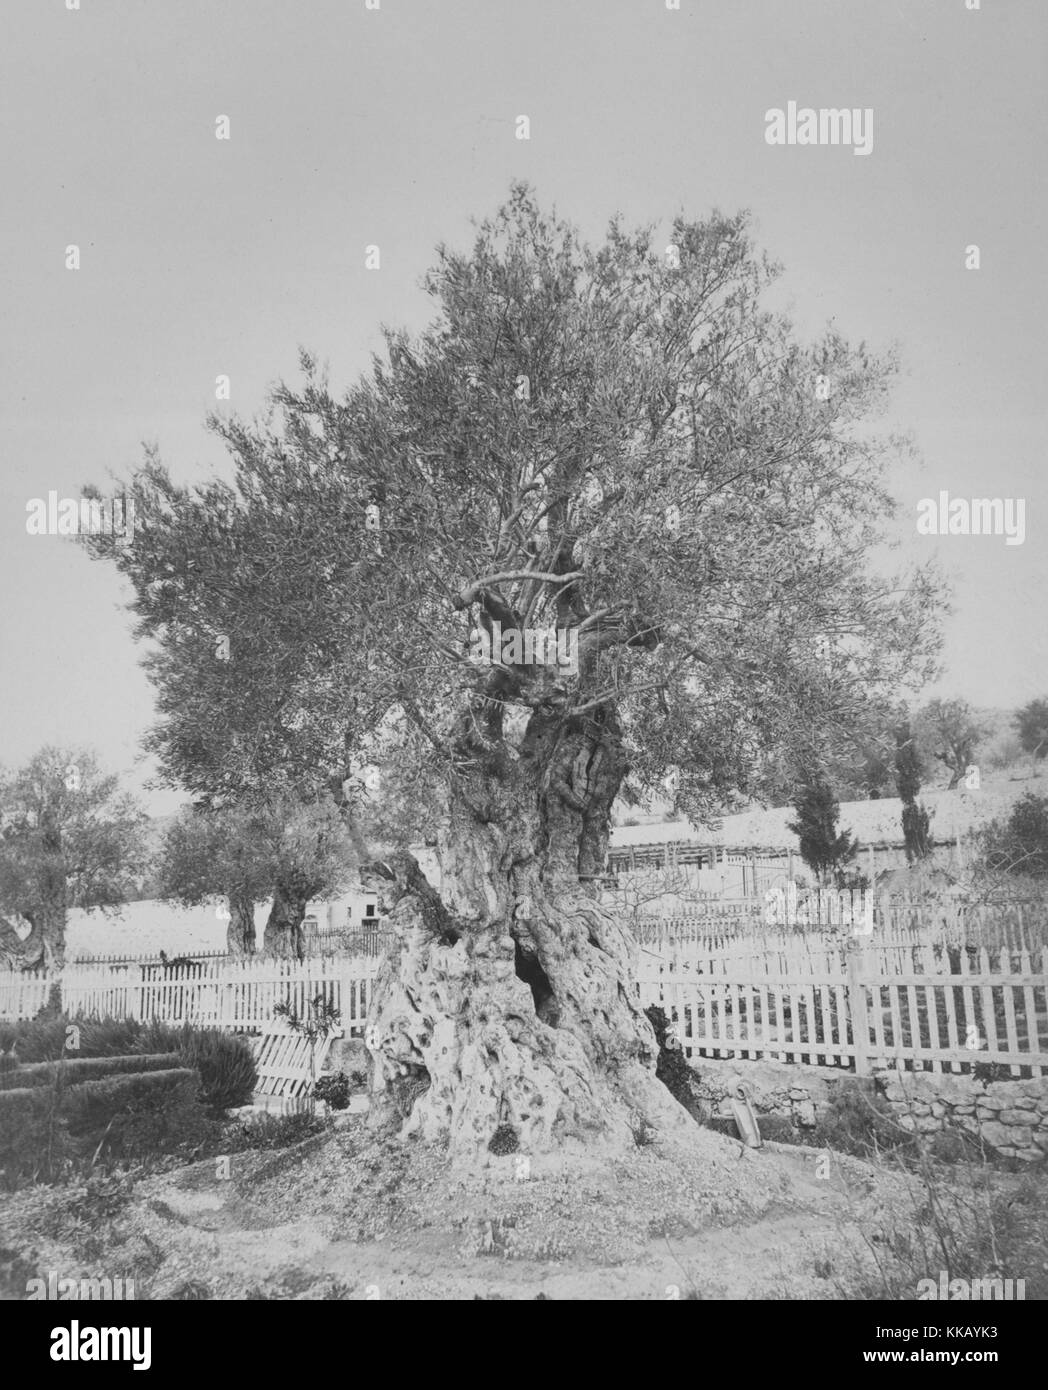 A photograph of an olive tree at Gethsemane, it is a garden that is situated near the base of Mount Olive, it is - Stock Image